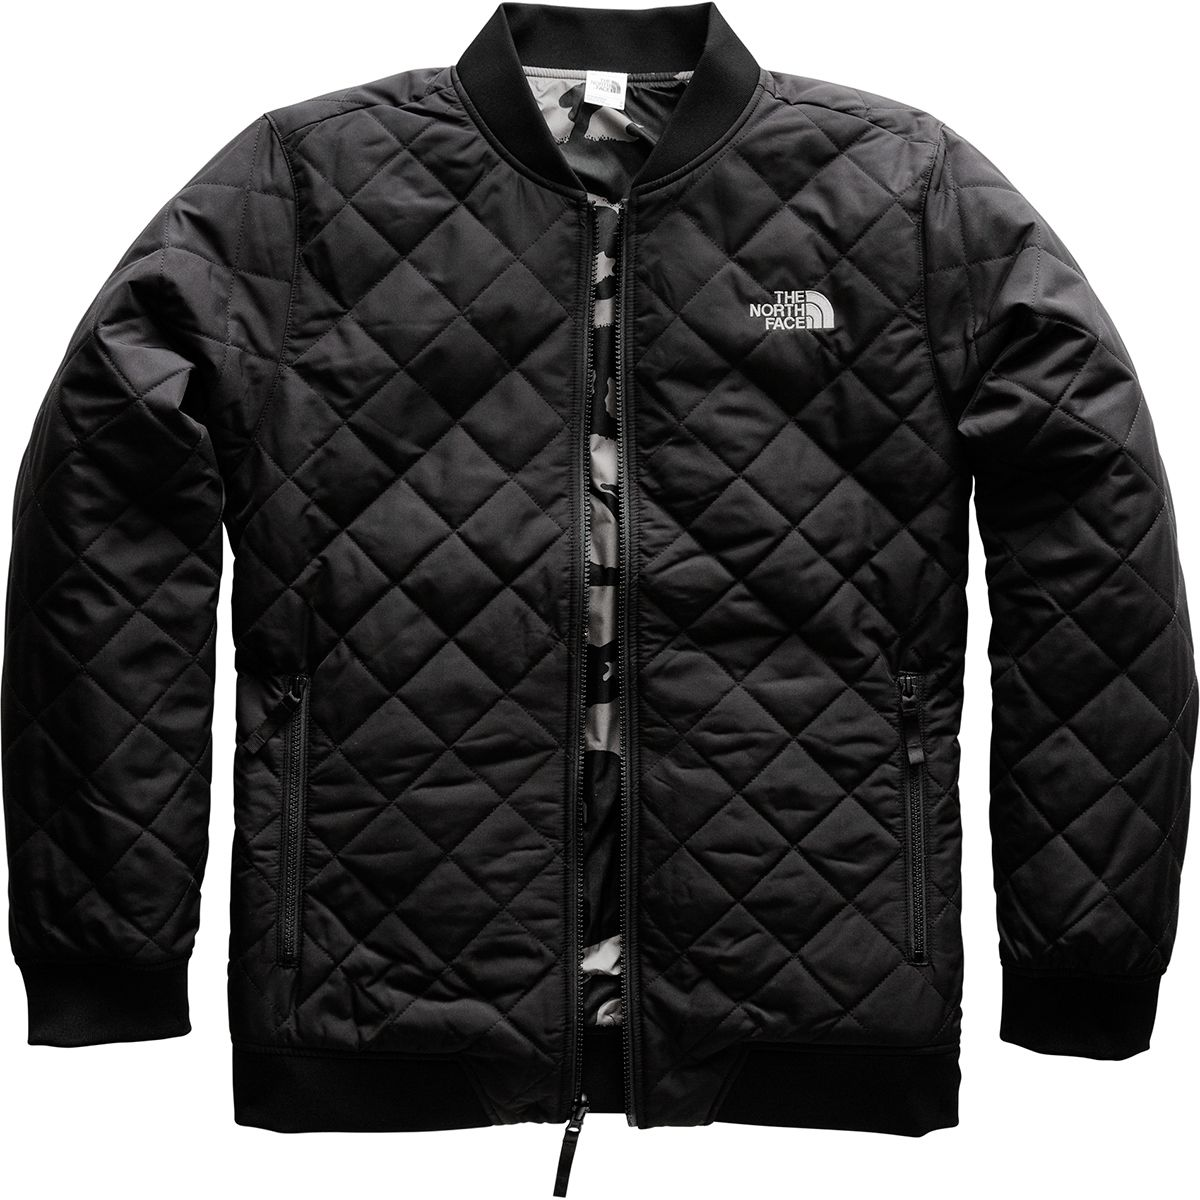 The North Face Jester Jacket